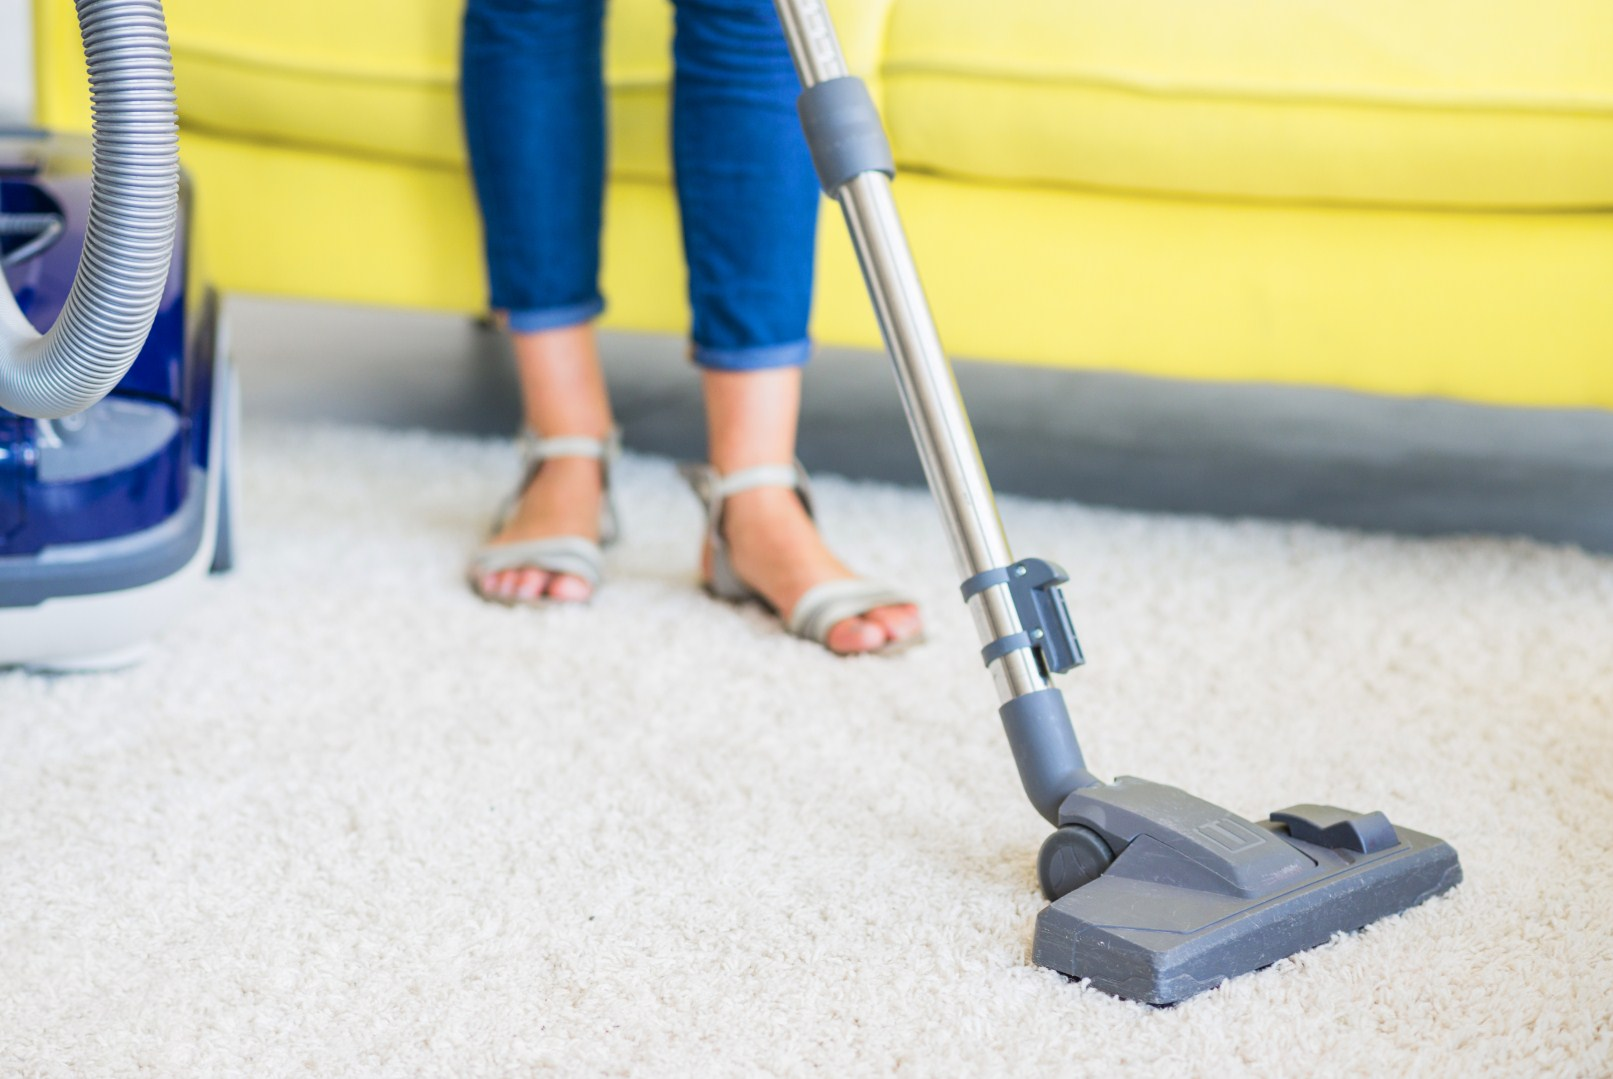 Get Ready in 2020 with new Carpet Cleaning Plans